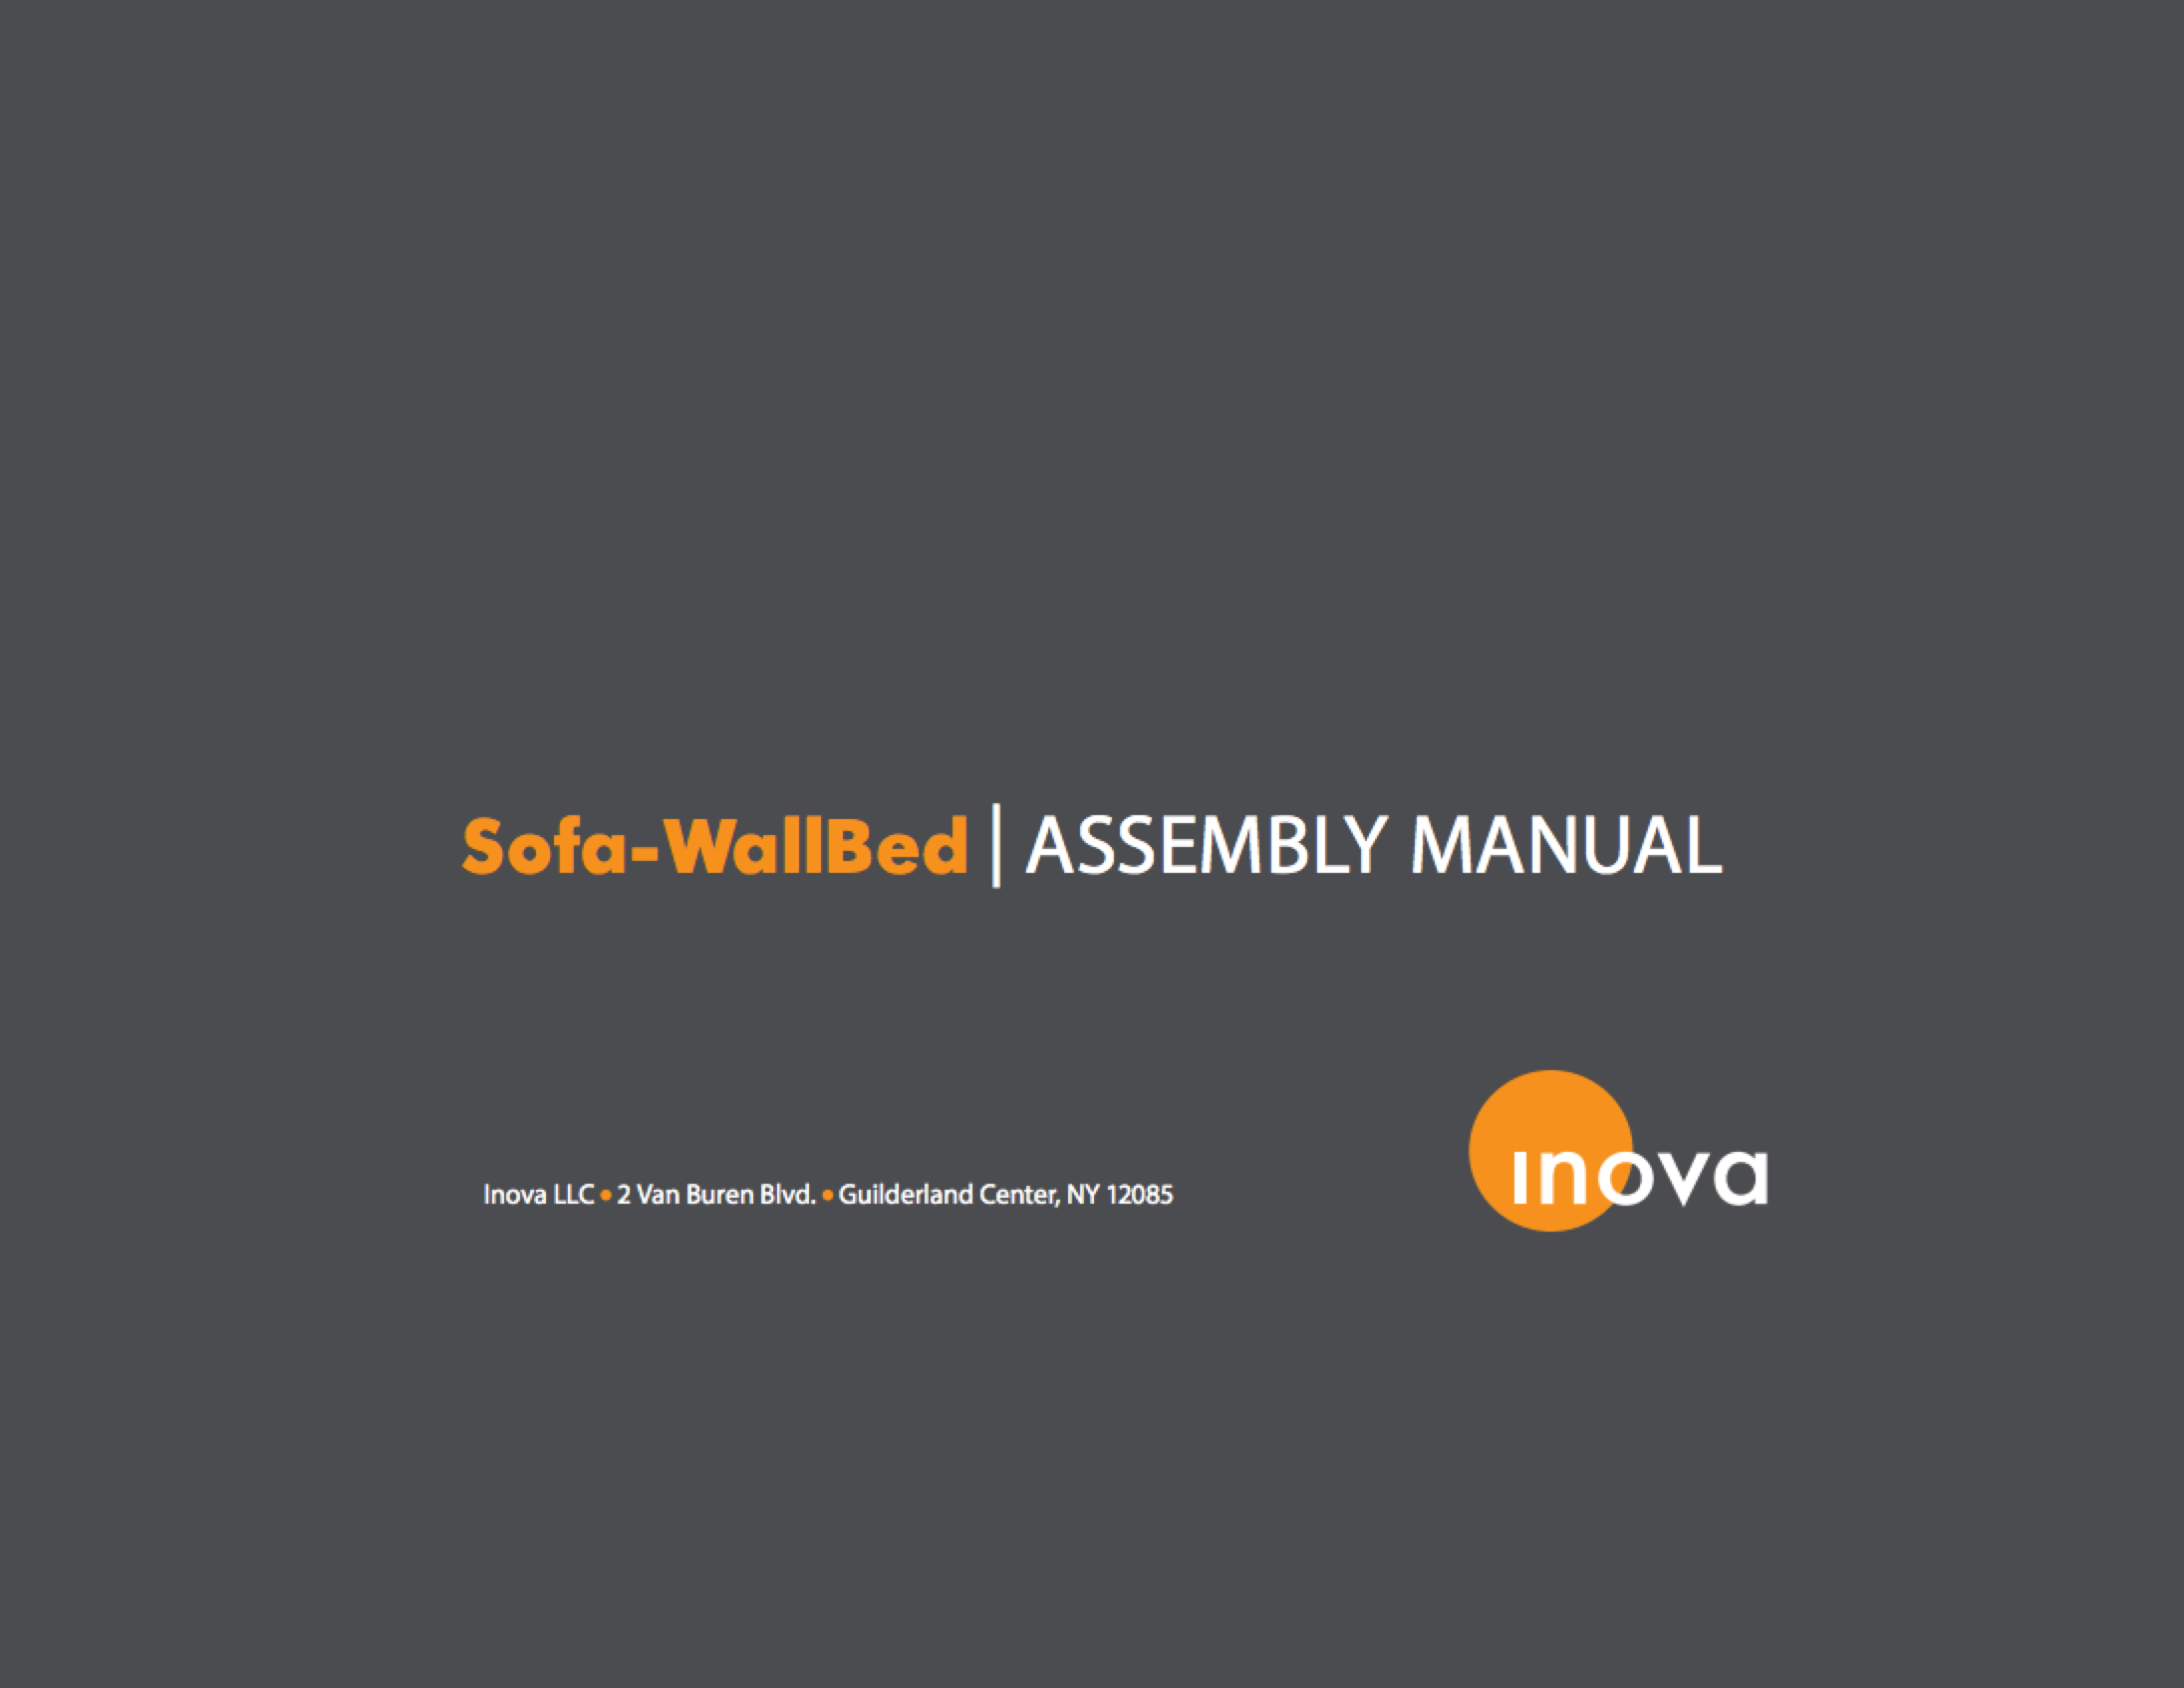 Sofa-WallBed Assembly Manual